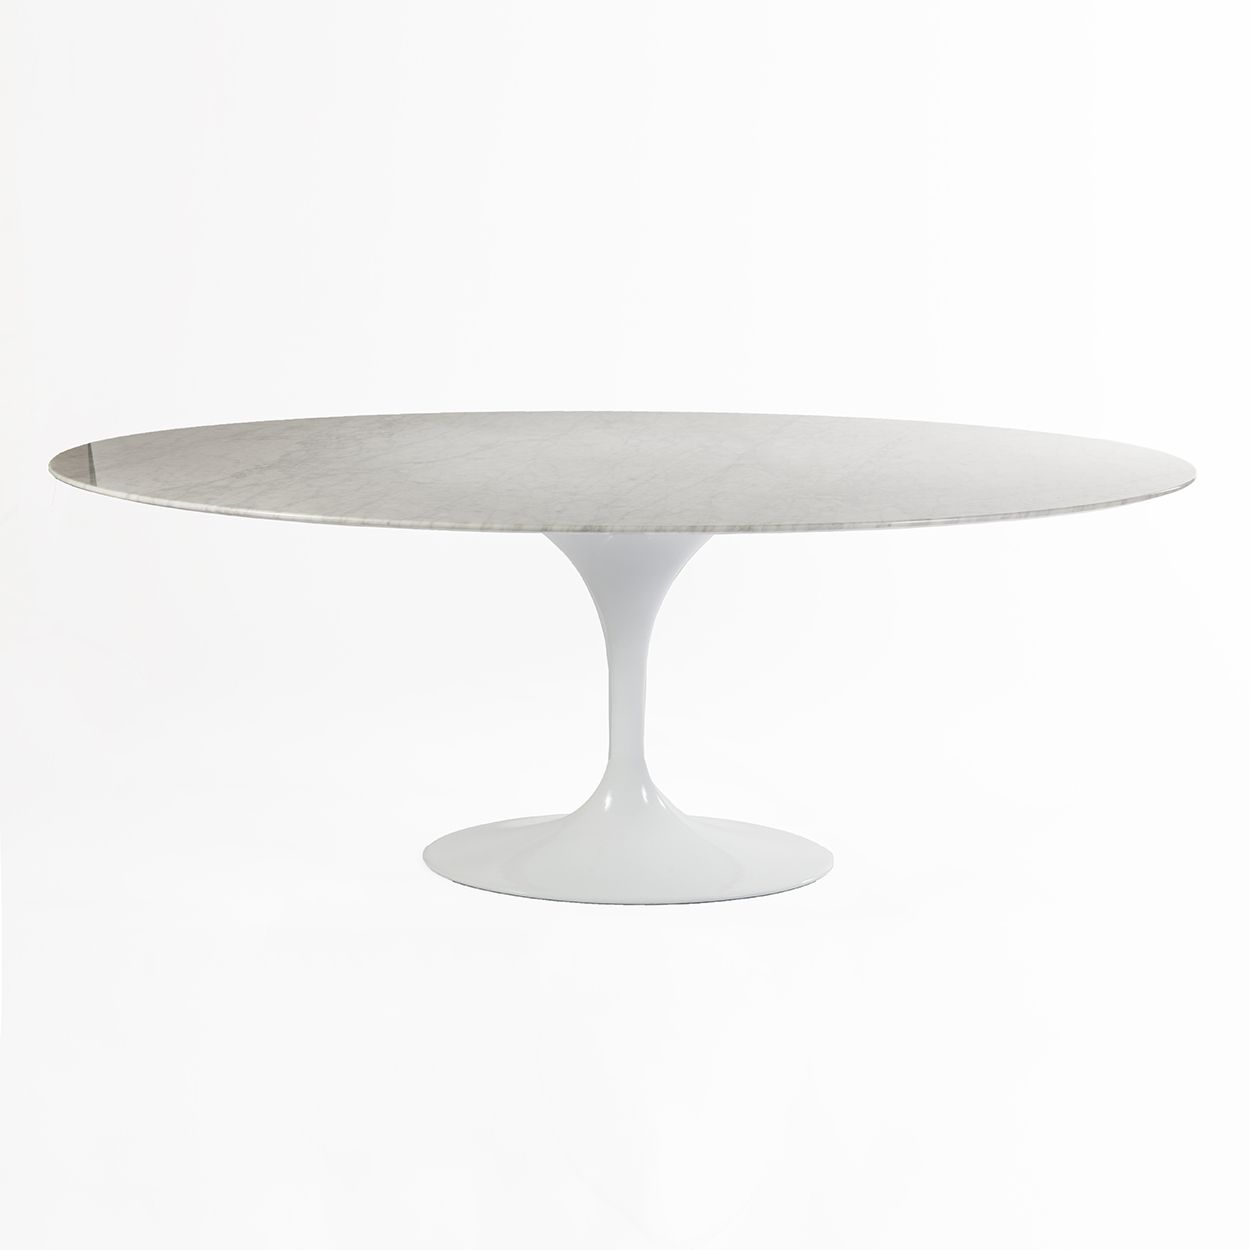 Marble Tulip Dining Table - 79